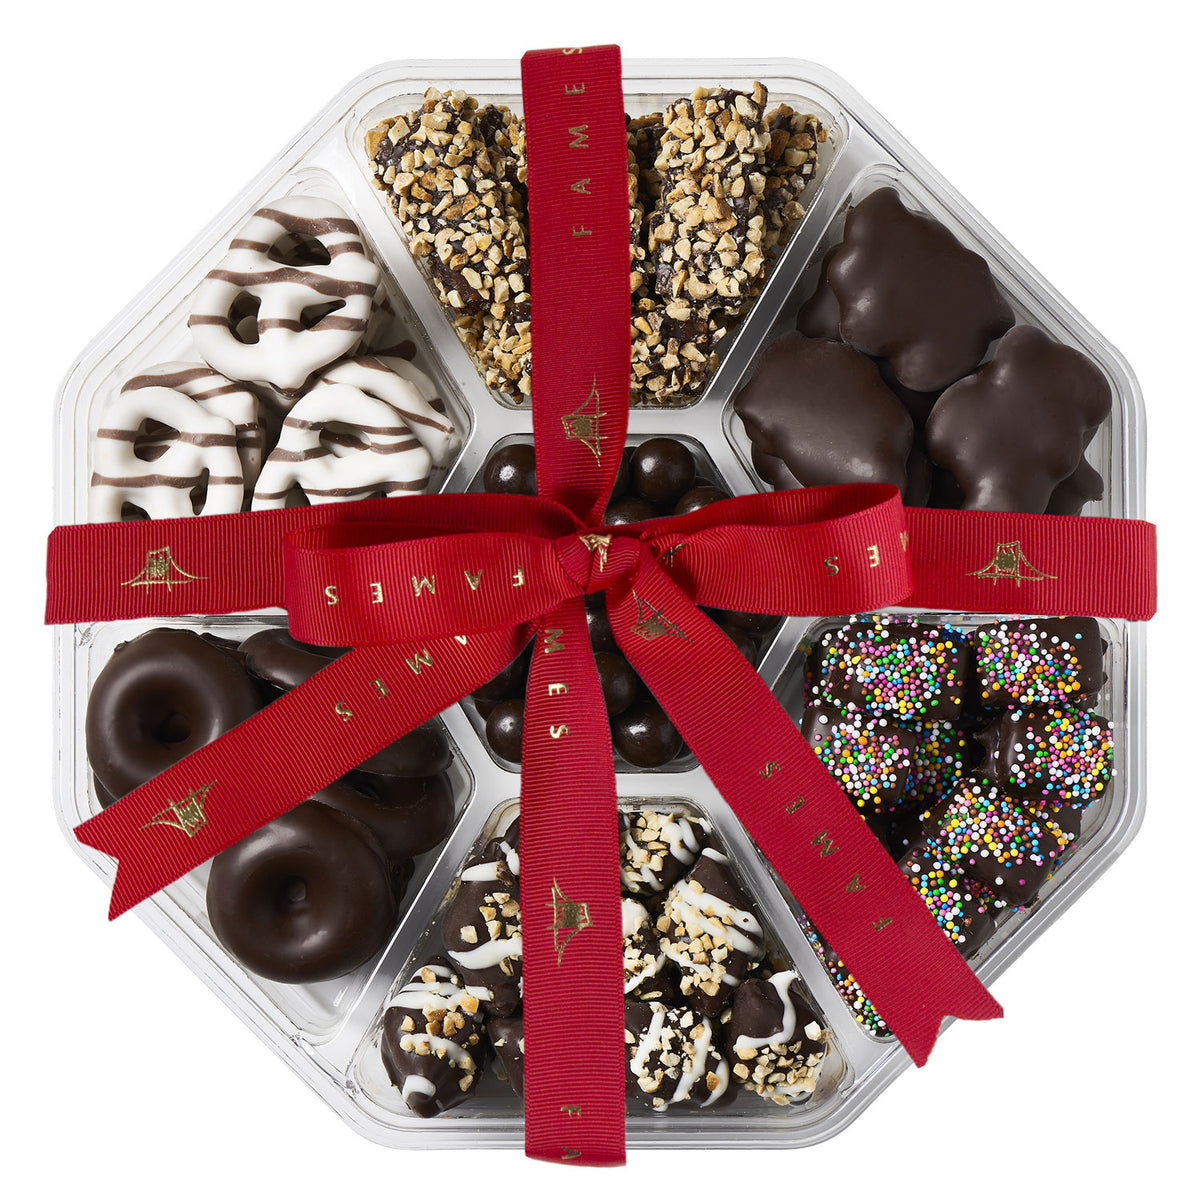 Seventh Heaven Chocolate Assortment Gift - 2 Lb